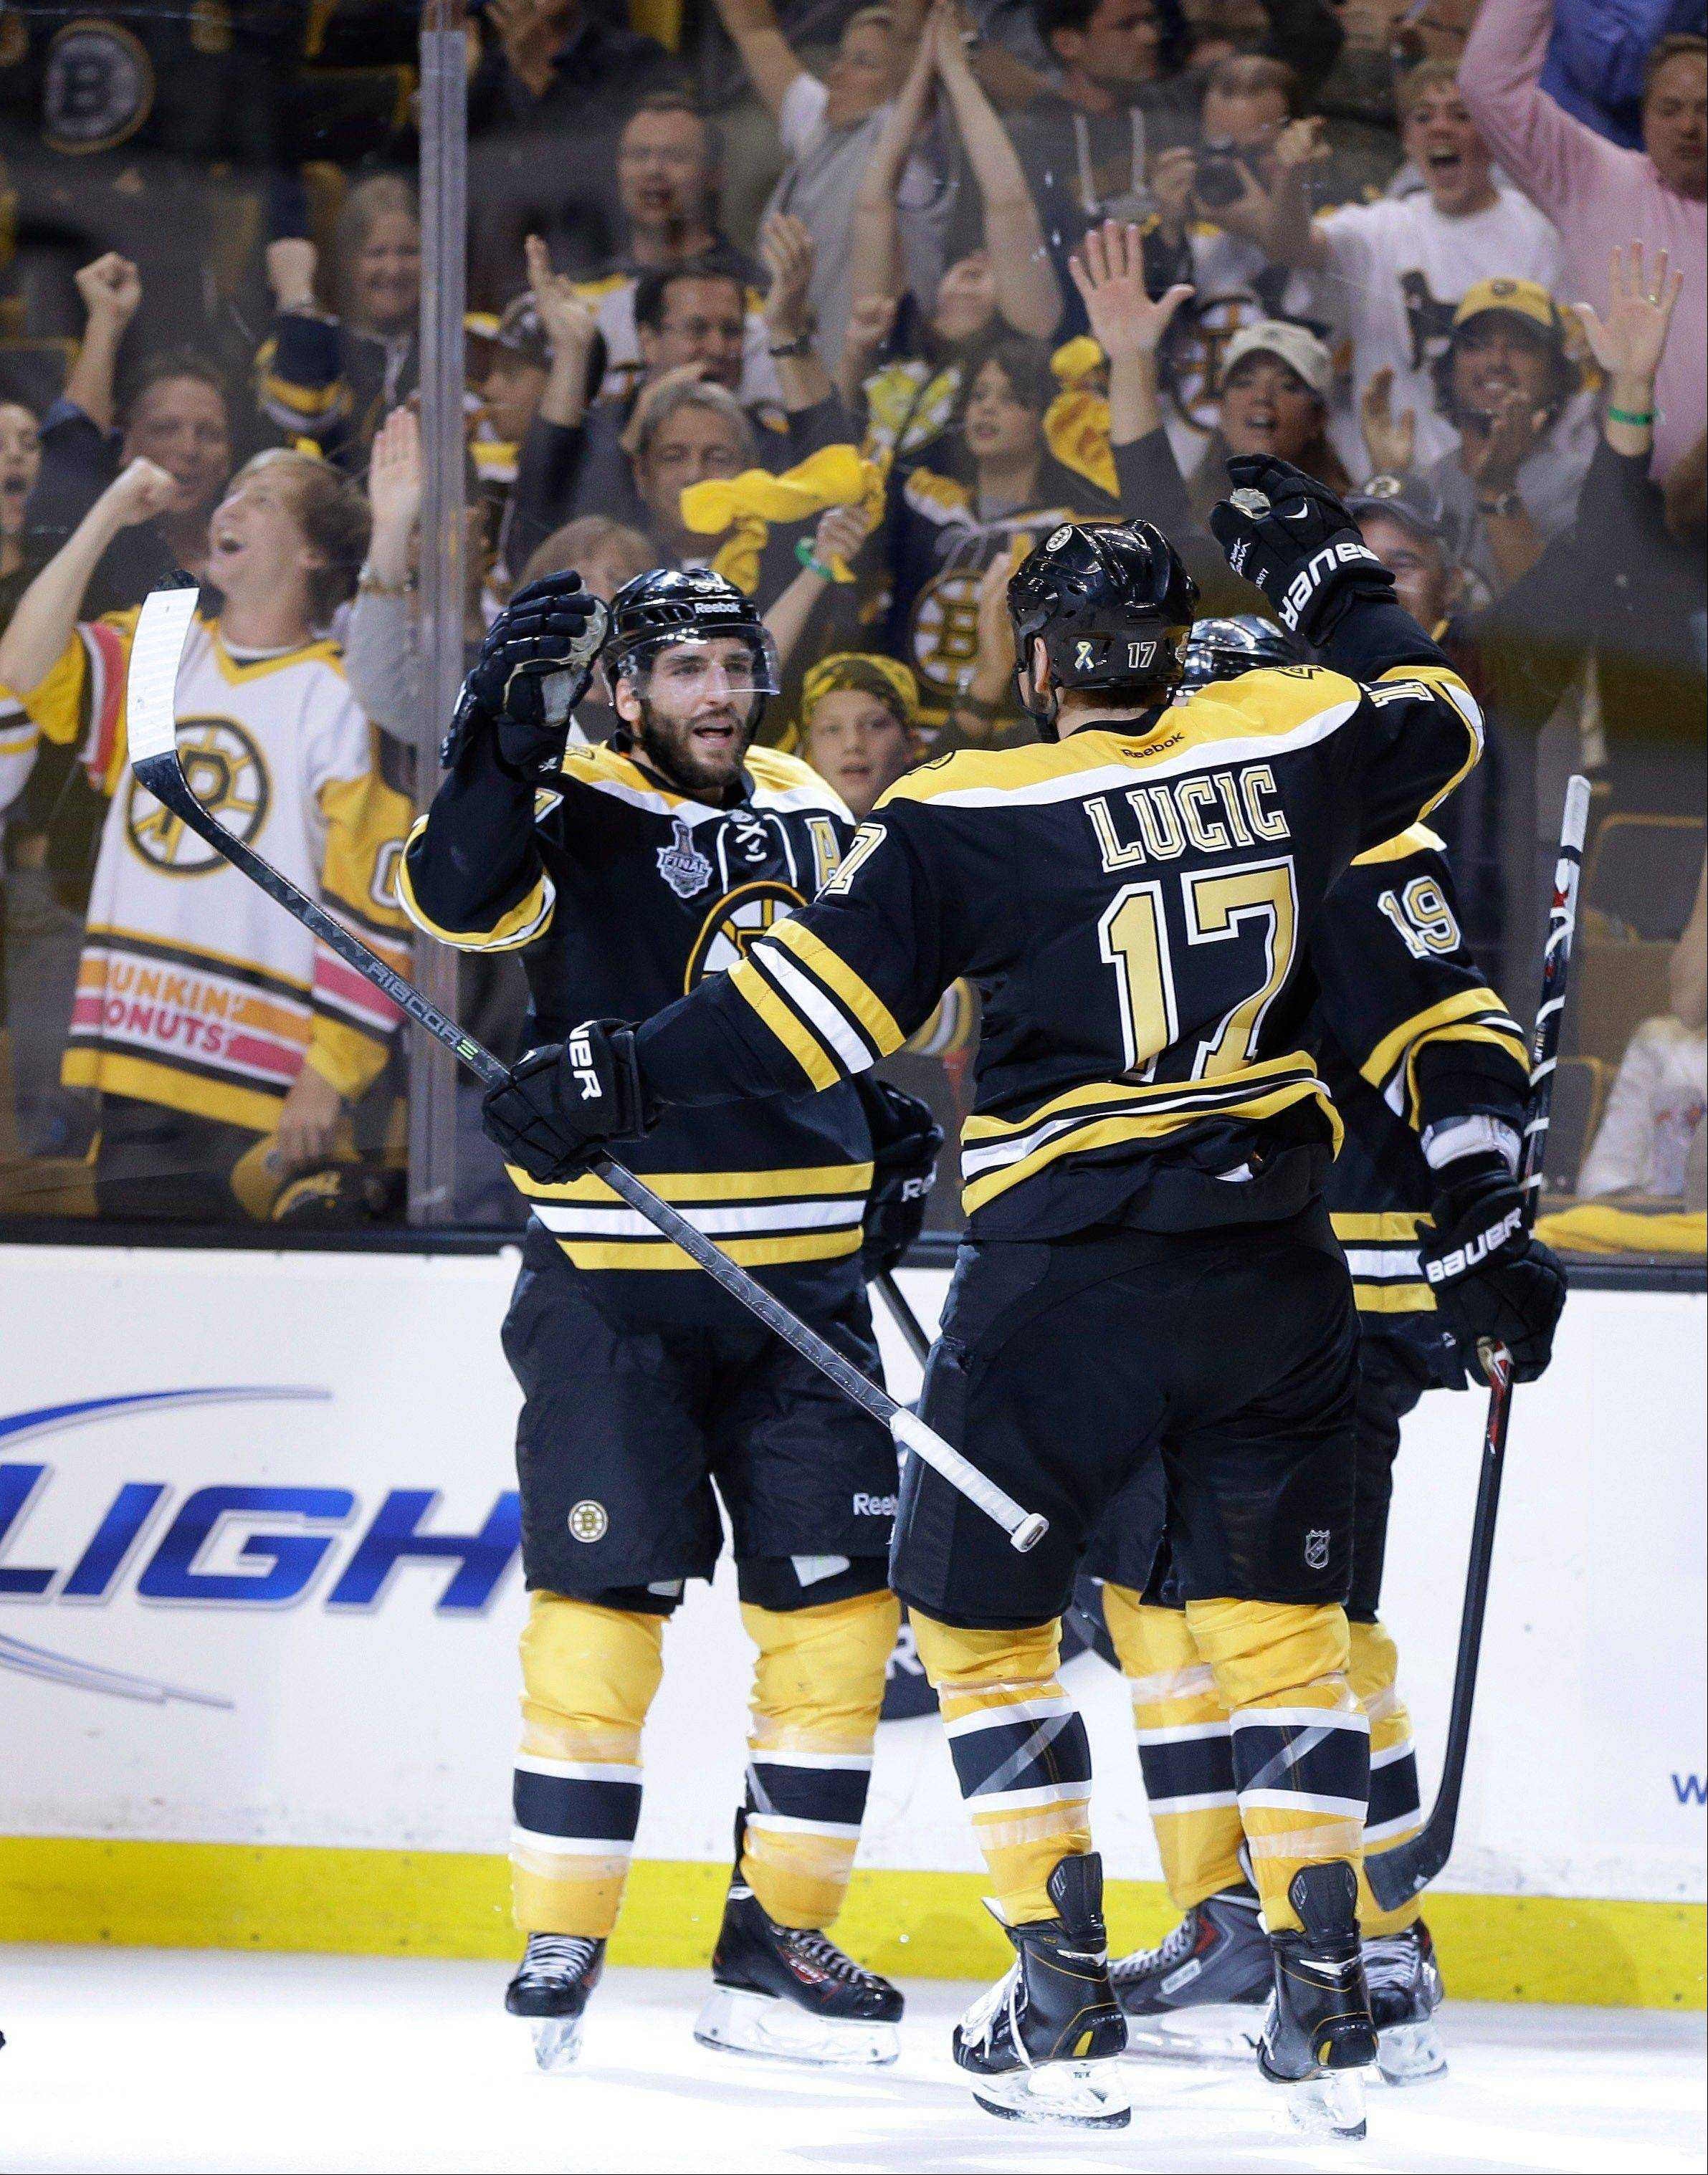 Boston Bruins center Patrice Bergeron, left, celebrates his goal against the Chicago Blackhawks with Milan Lucic (17) and Tyler Seguin (19) during the second period in Game 3 of the NHL hockey Stanley Cup Finals.